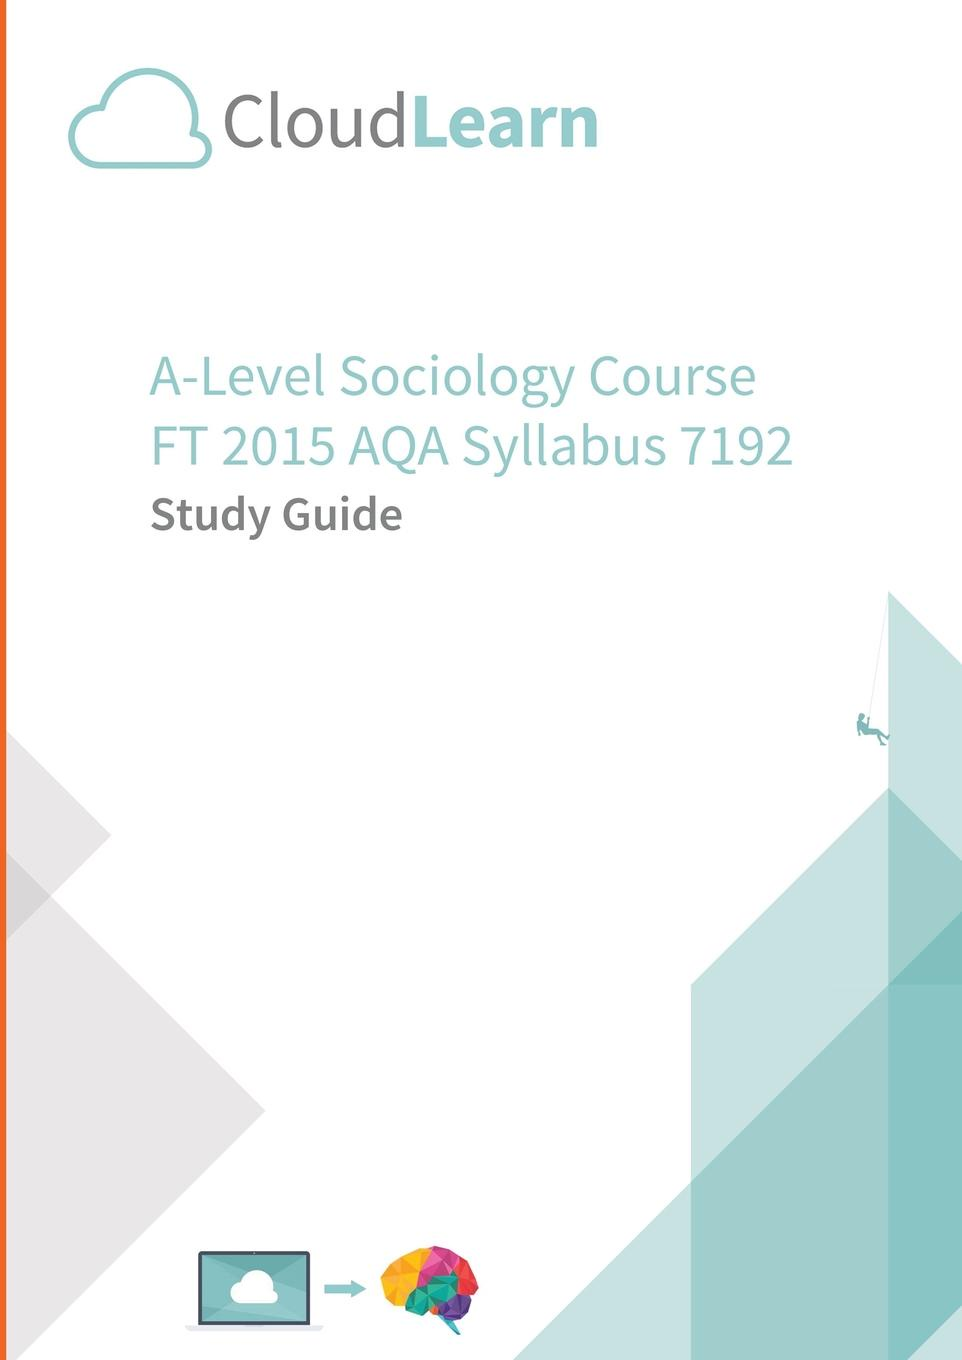 CloudLearn Ltd CL2.0 CloudLearn A-Level FT 2015 Sociology 7192 цены онлайн